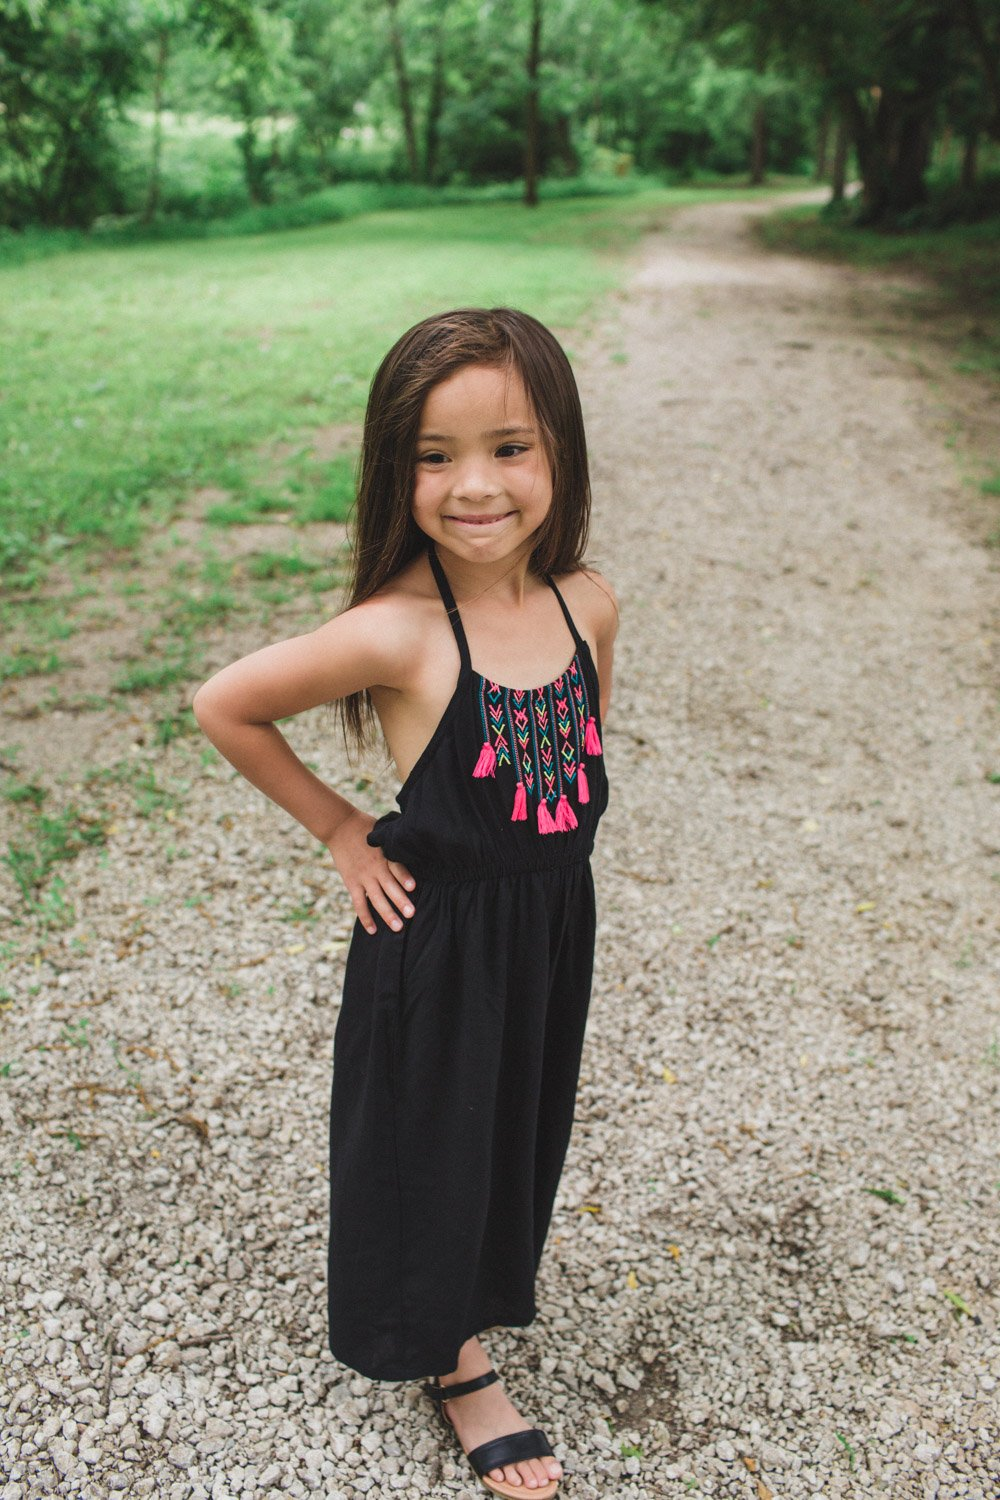 Safari Jungle Themed Jumpsuit for 7 Year Old Girl - Embroidered halter jumpsuit that all kids will love!